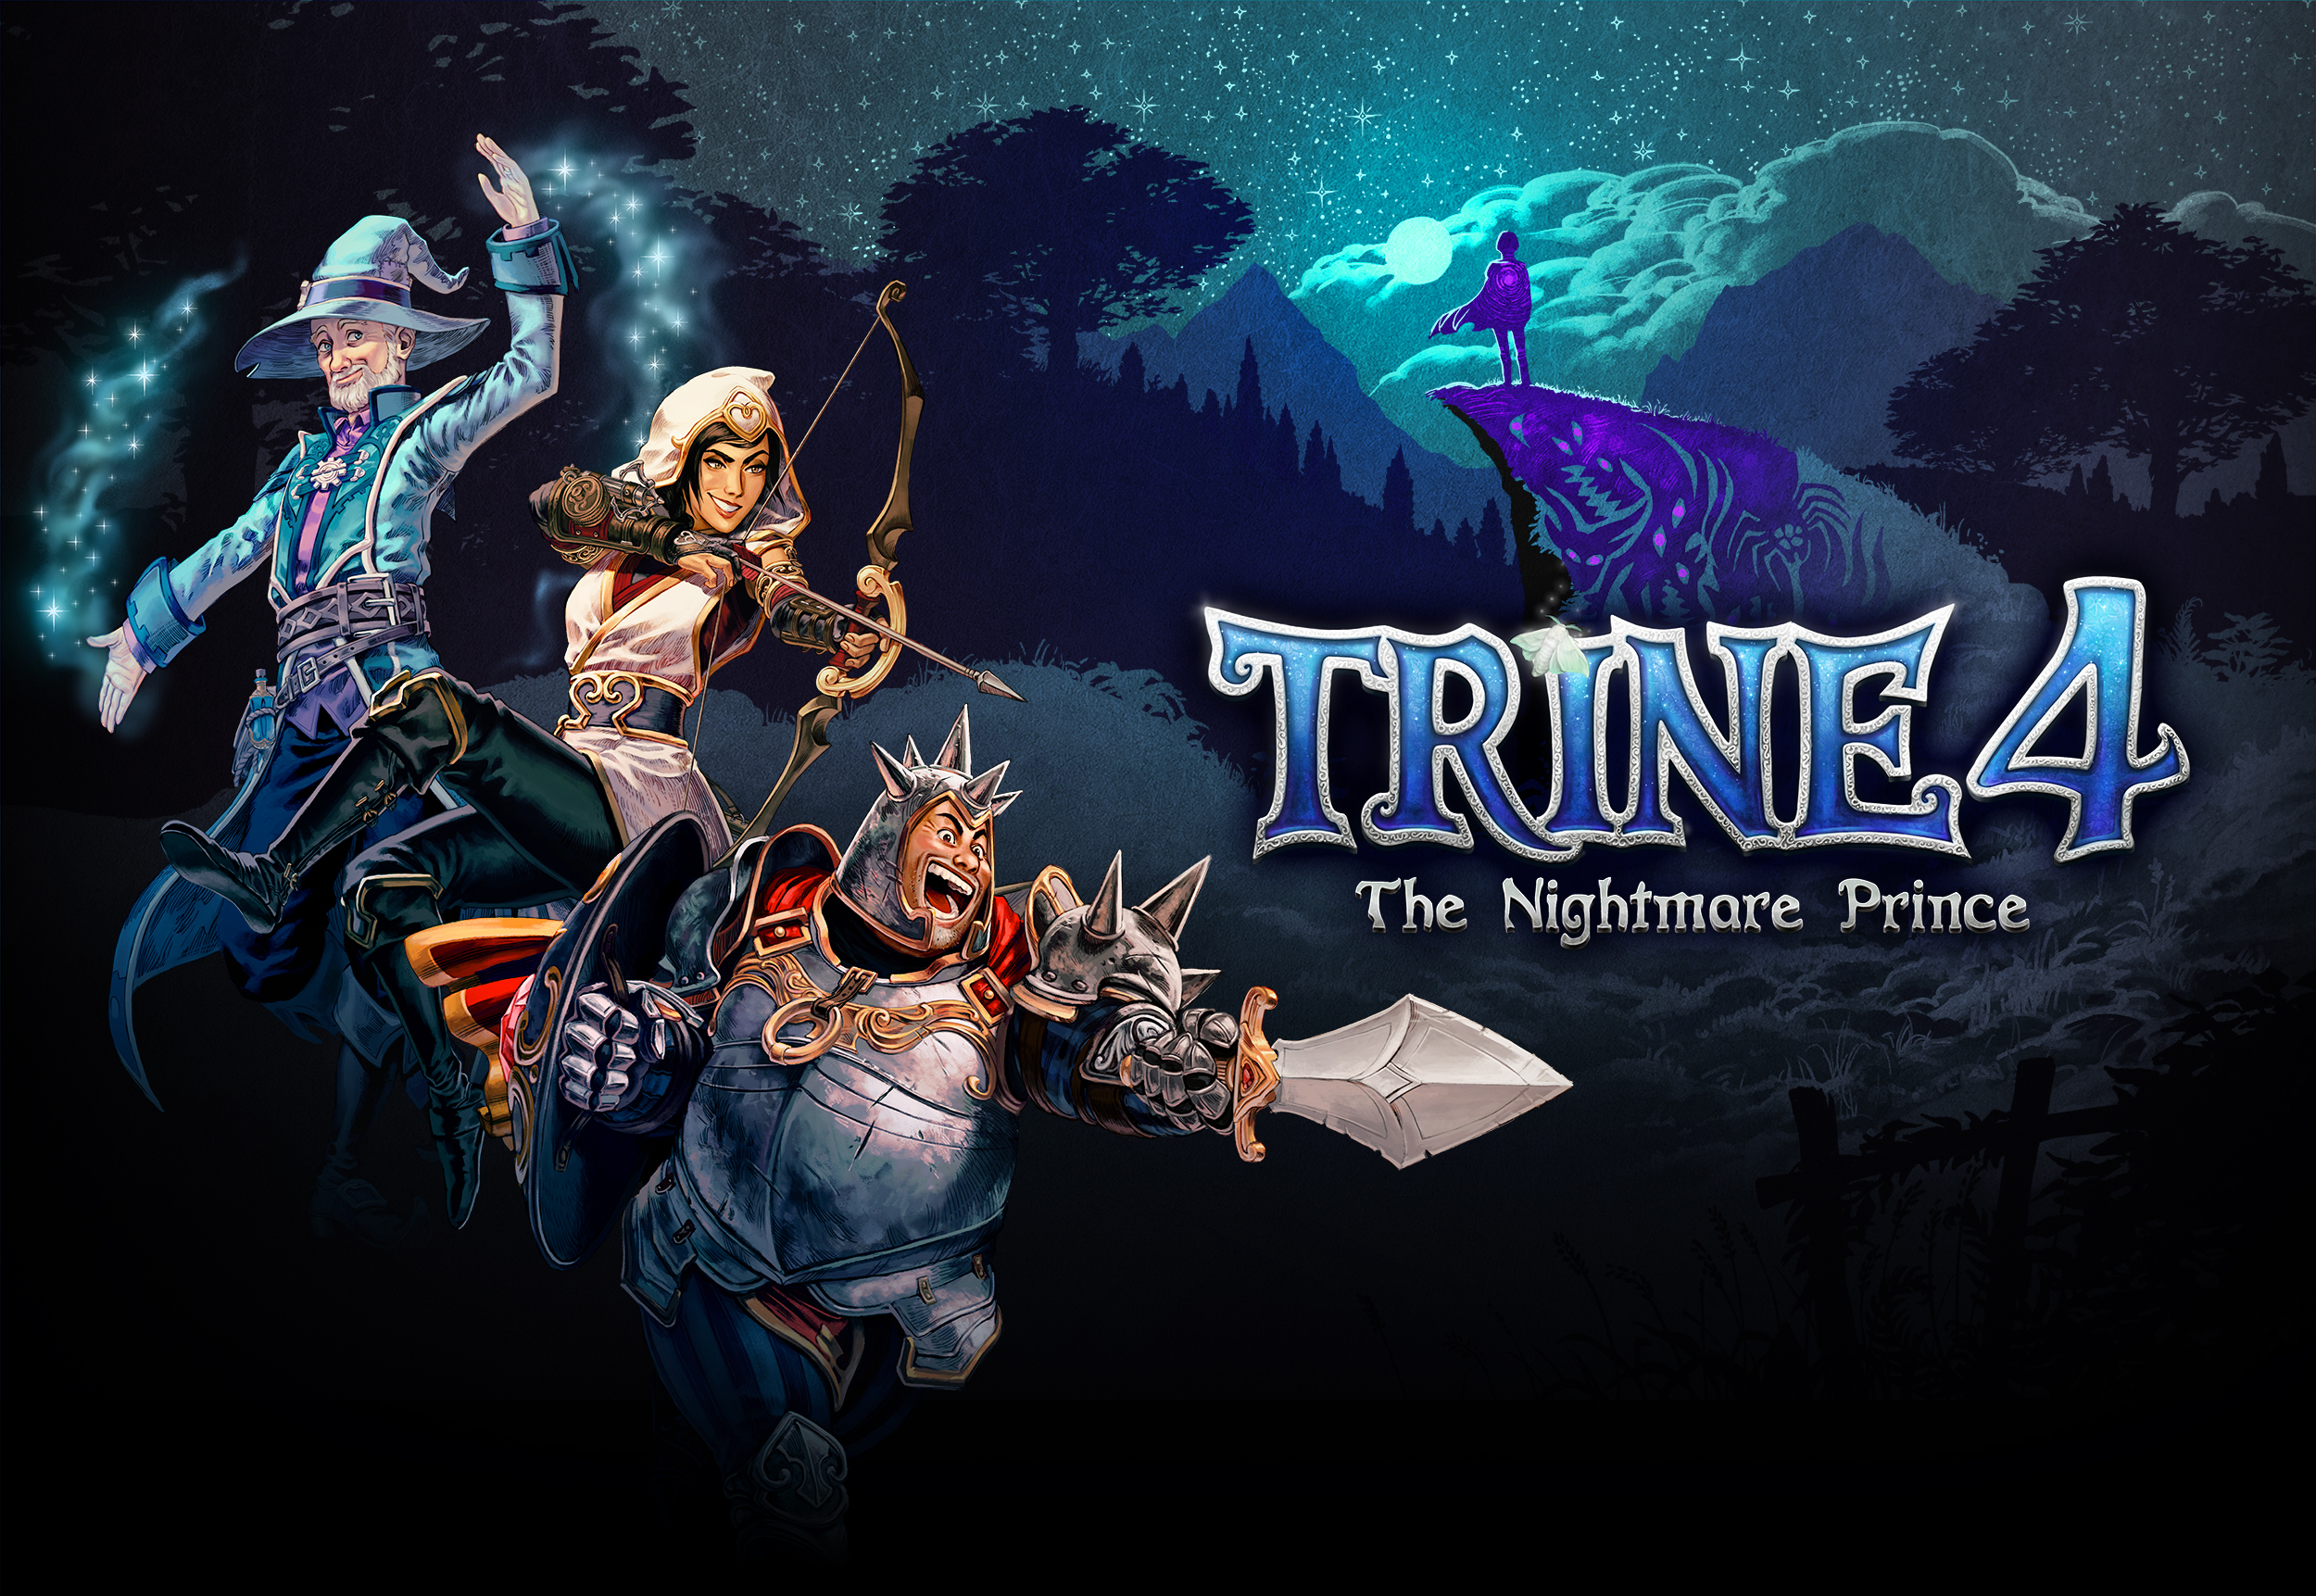 Trine 4 Crash Course Video Highlights New Features, Hero Abilities in Series' Triumphant Return